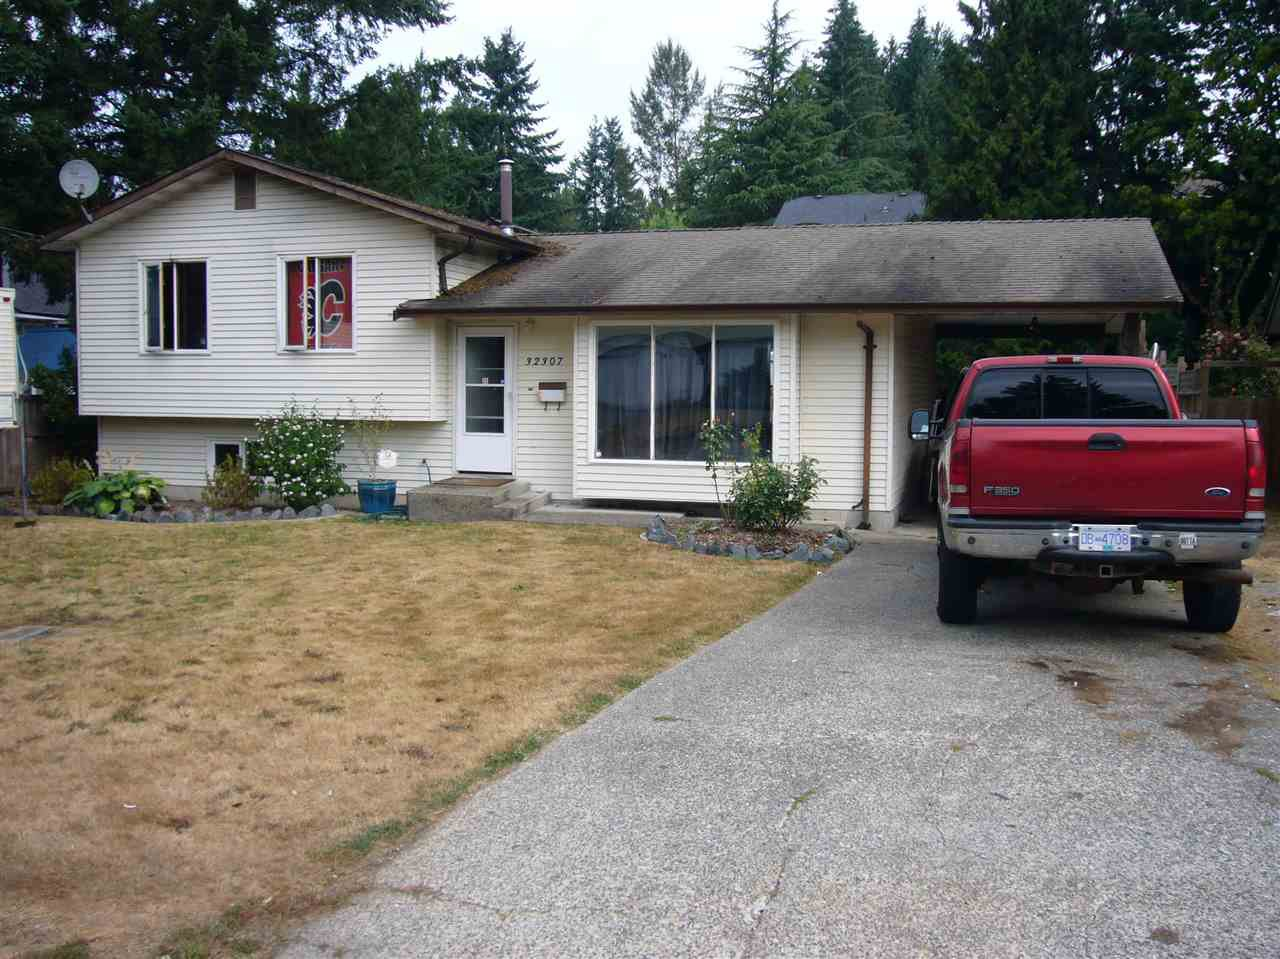 Photo 1: Photos: 32307 14TH Avenue in Mission: Mission BC House for sale : MLS®# R2196901